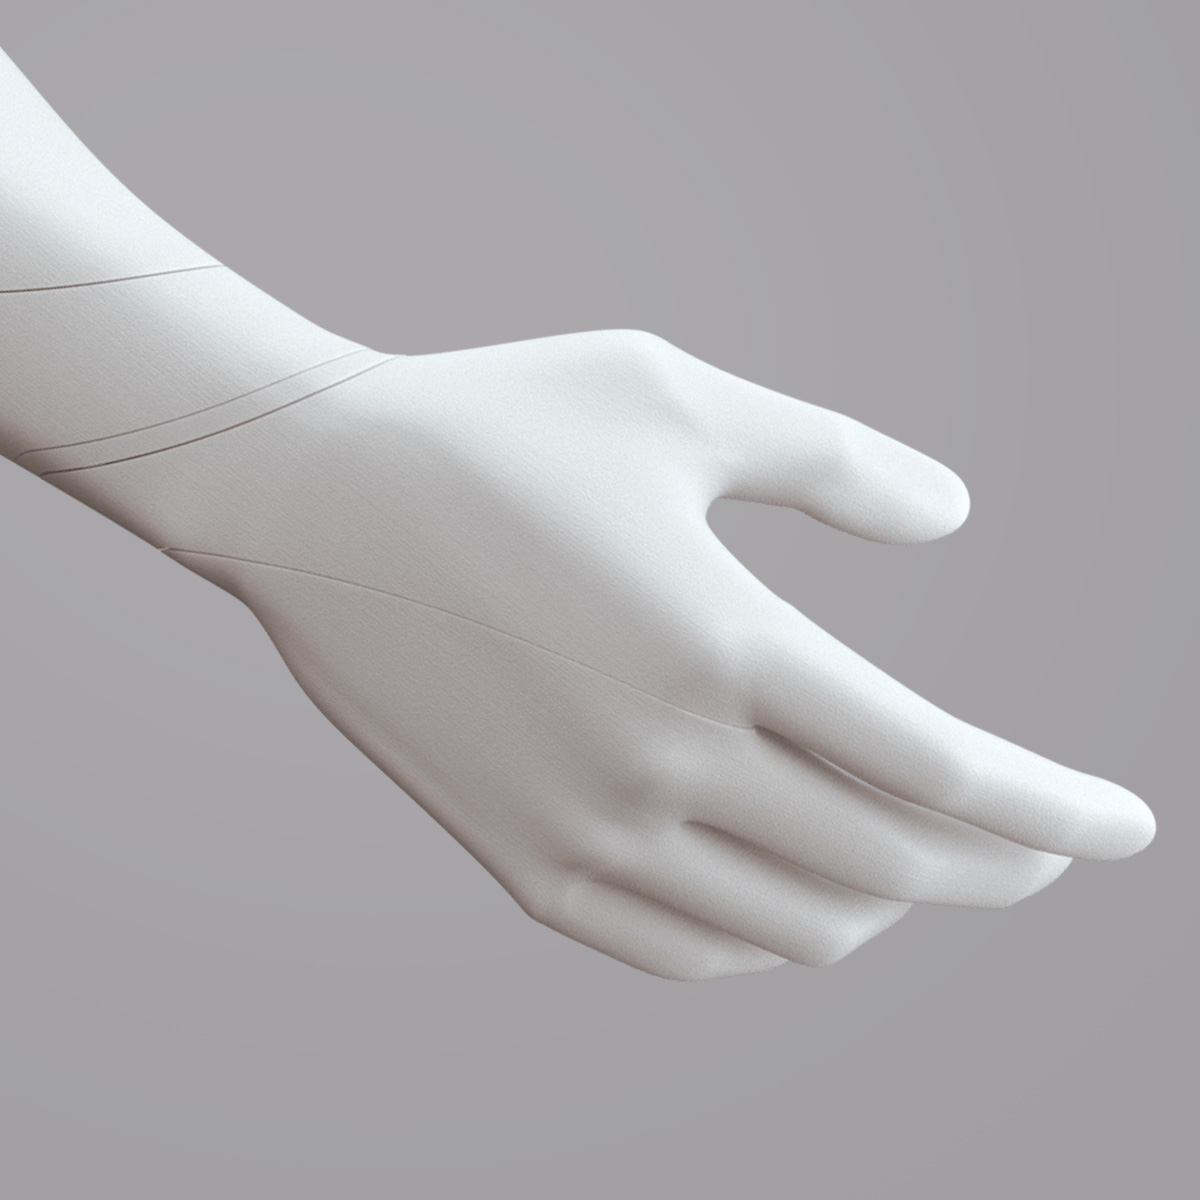 PA11 3D Printed Prosthetic Hand